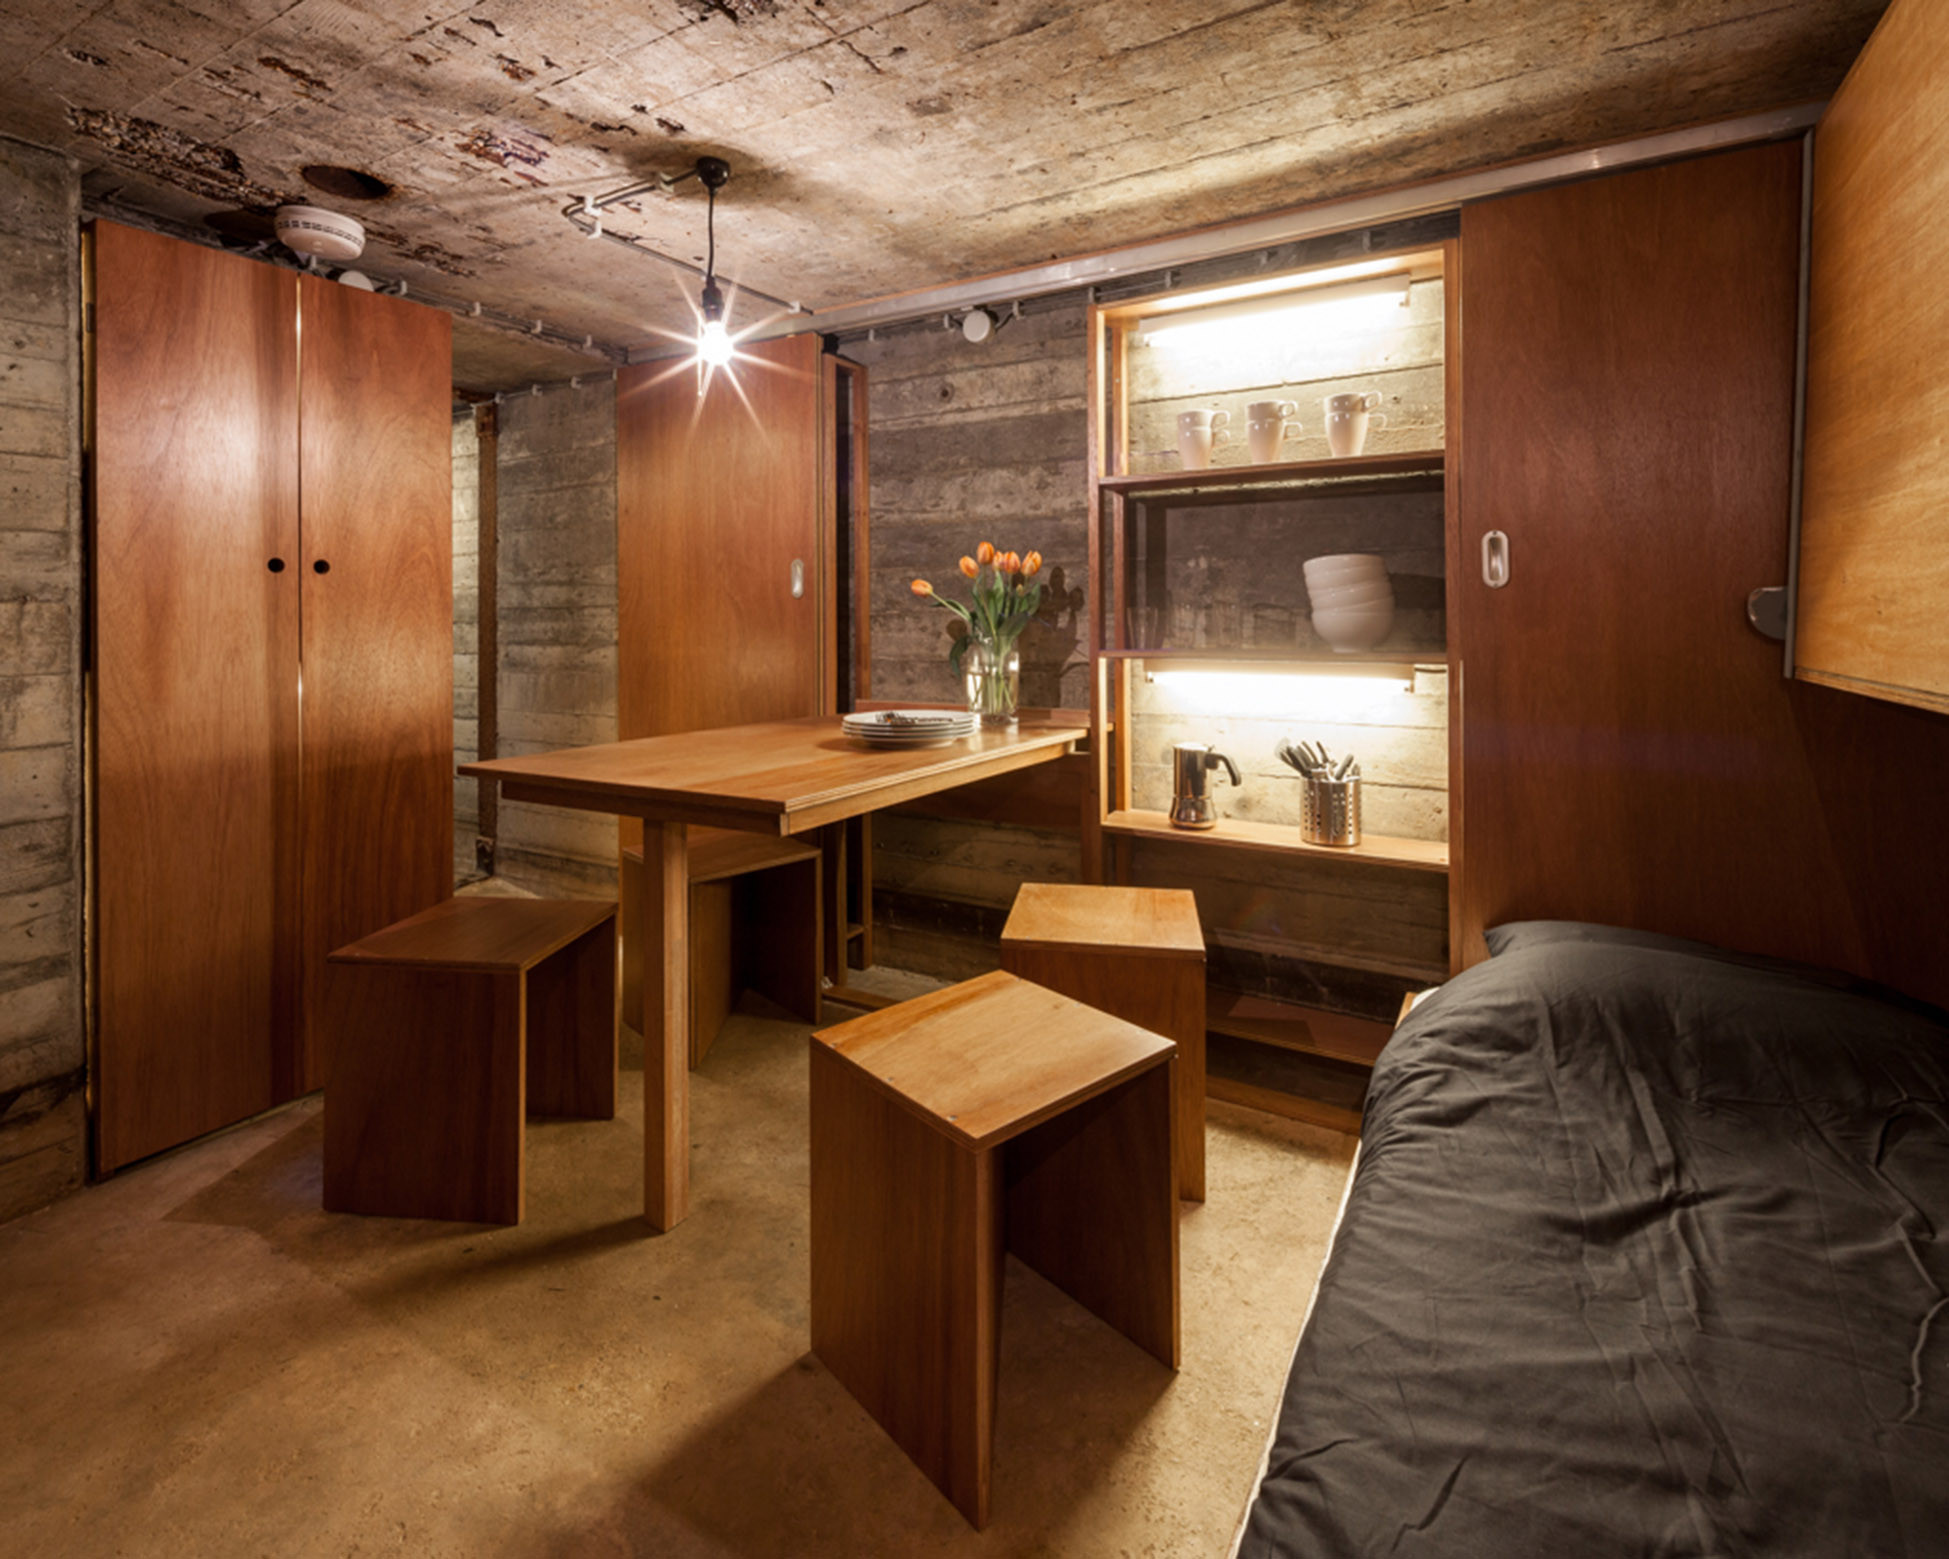 War Bunker Refurbishment / B-ILD, © Tim Van de Velde